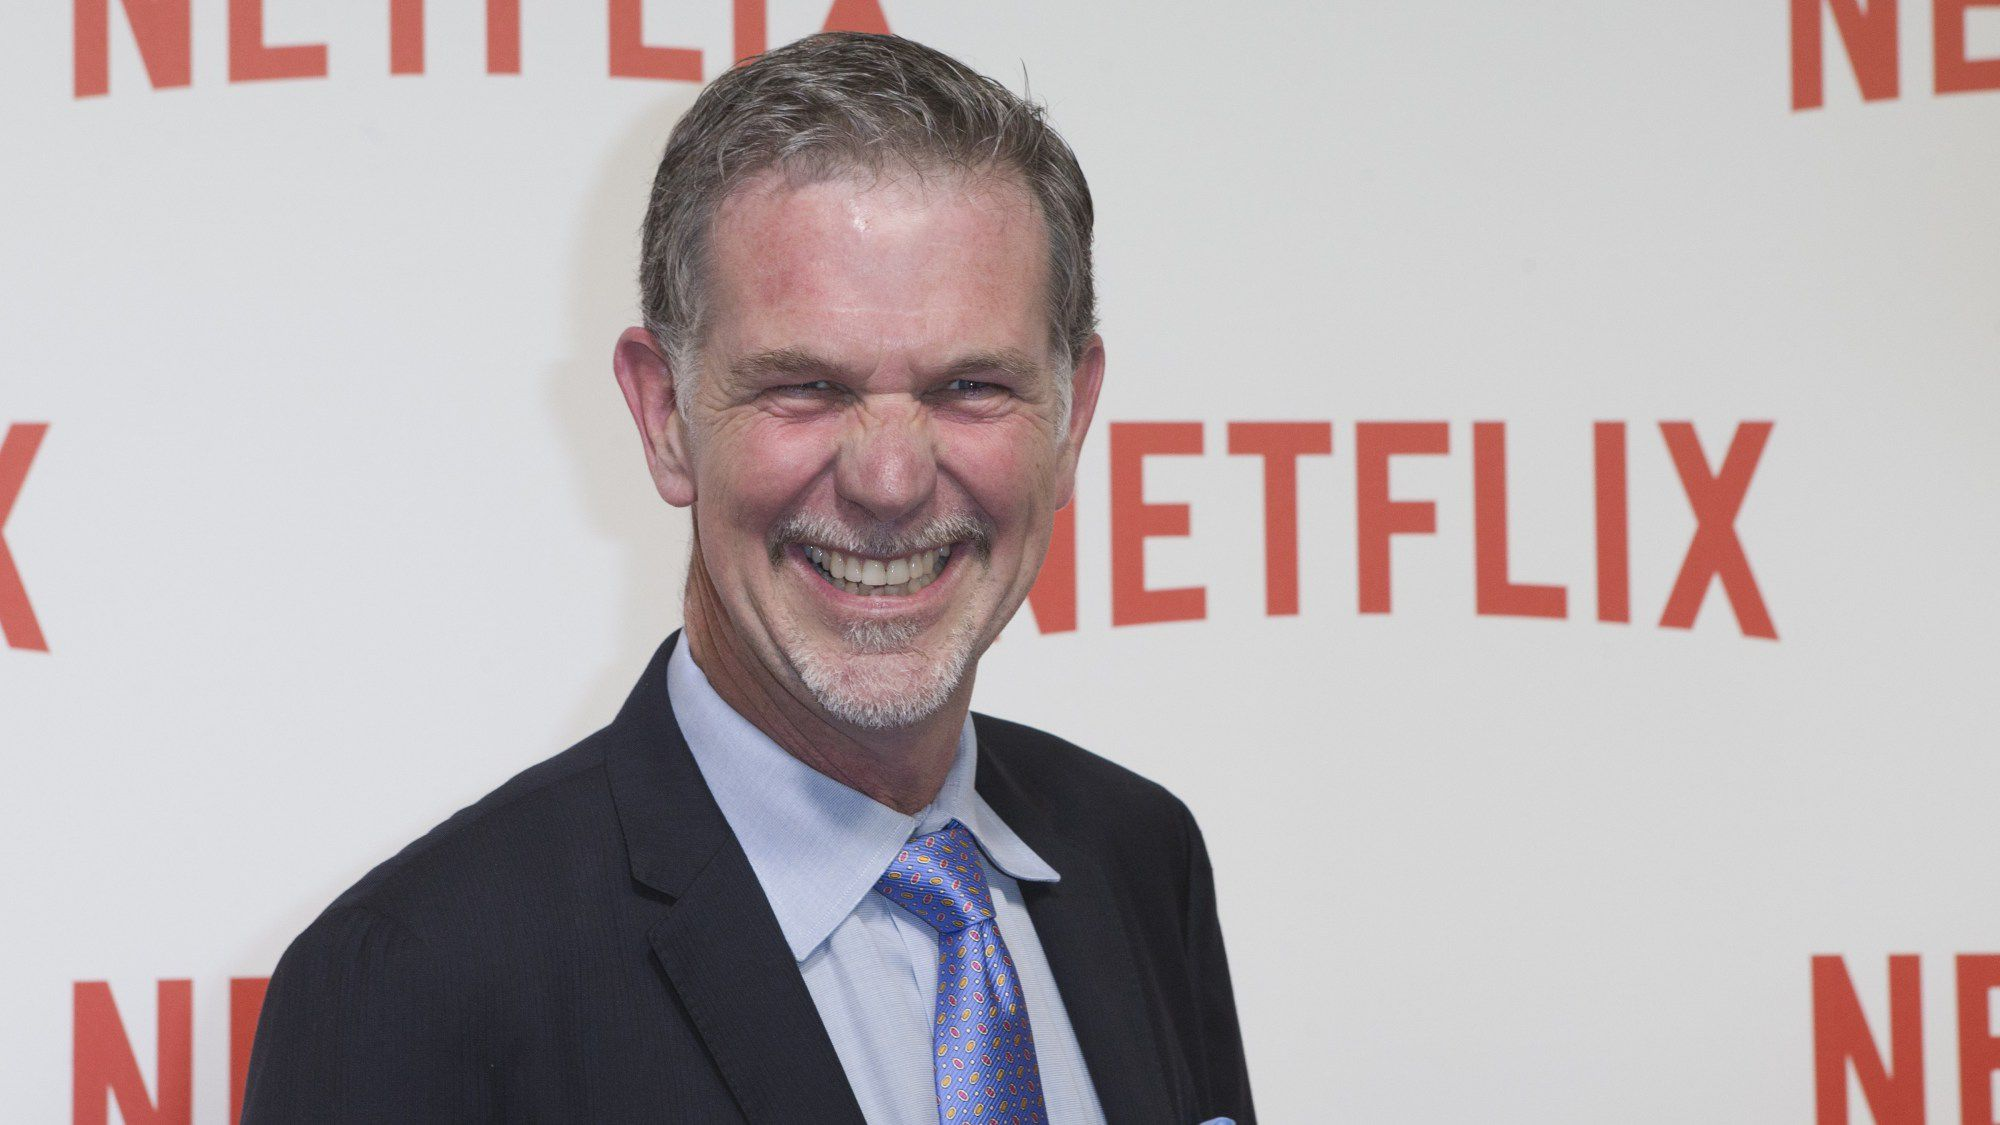 Reed Hastings Netflix Charter Time Warner Cable